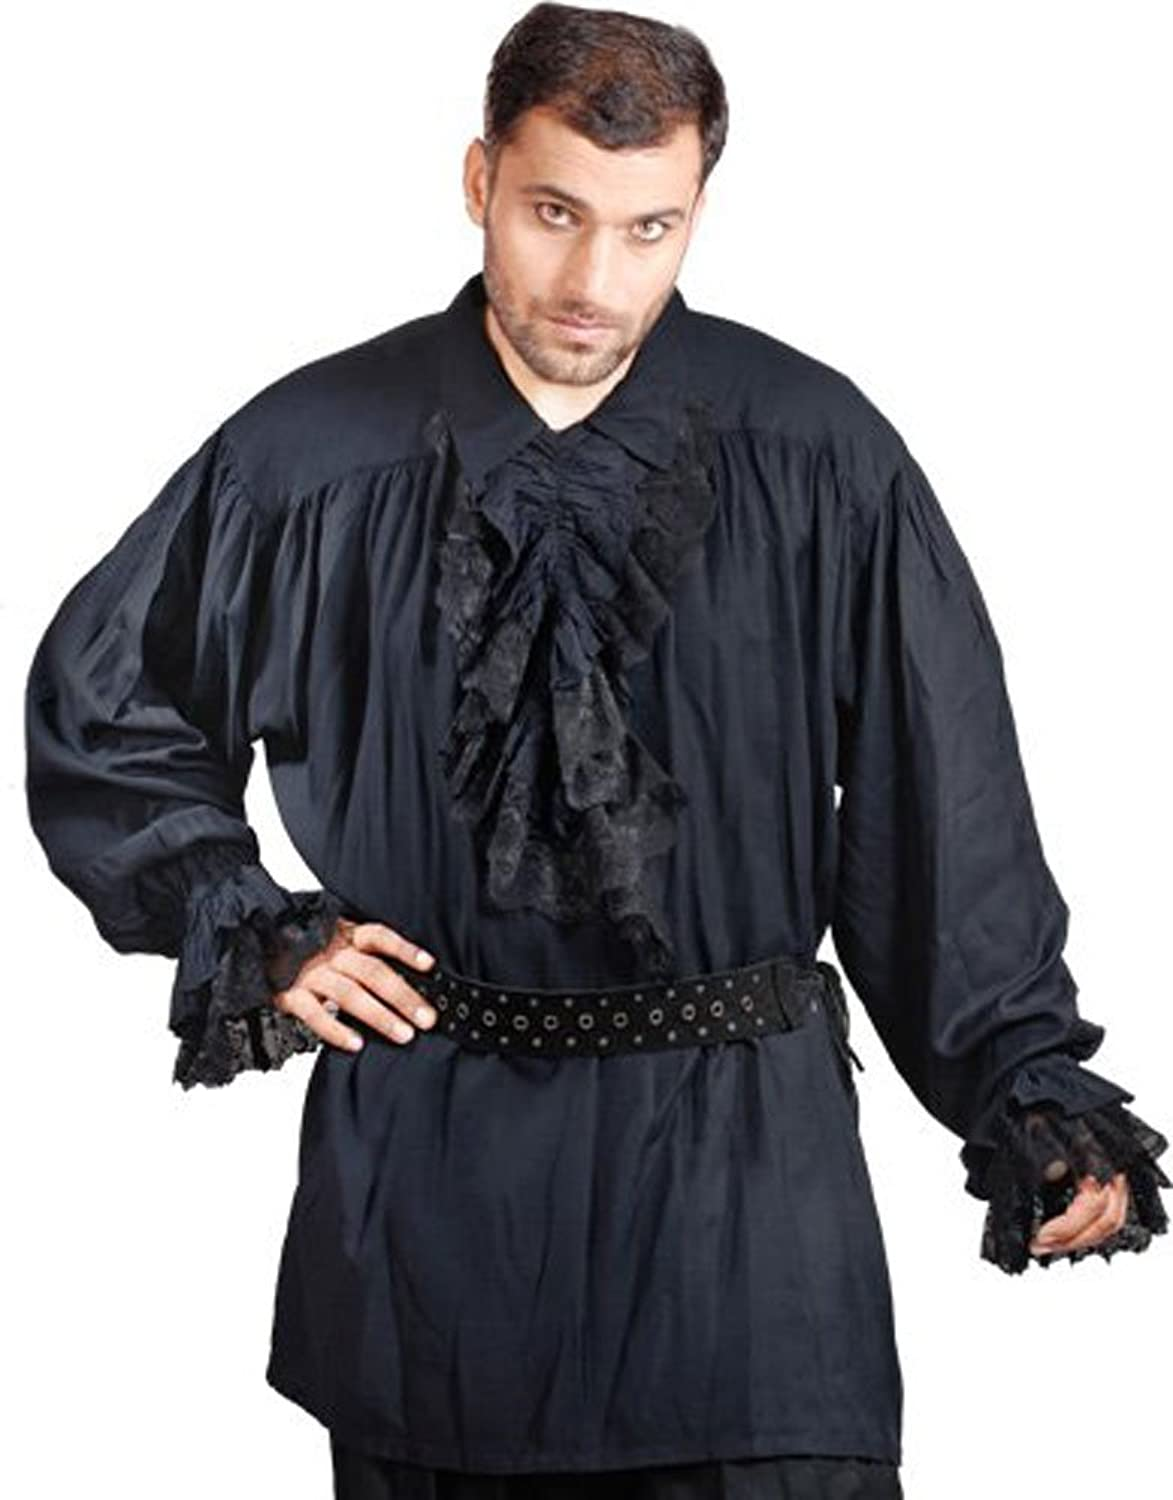 39b3b451abd ... Men s Black Pirate Renaissance Shirt with Detachable Lace Ruffles